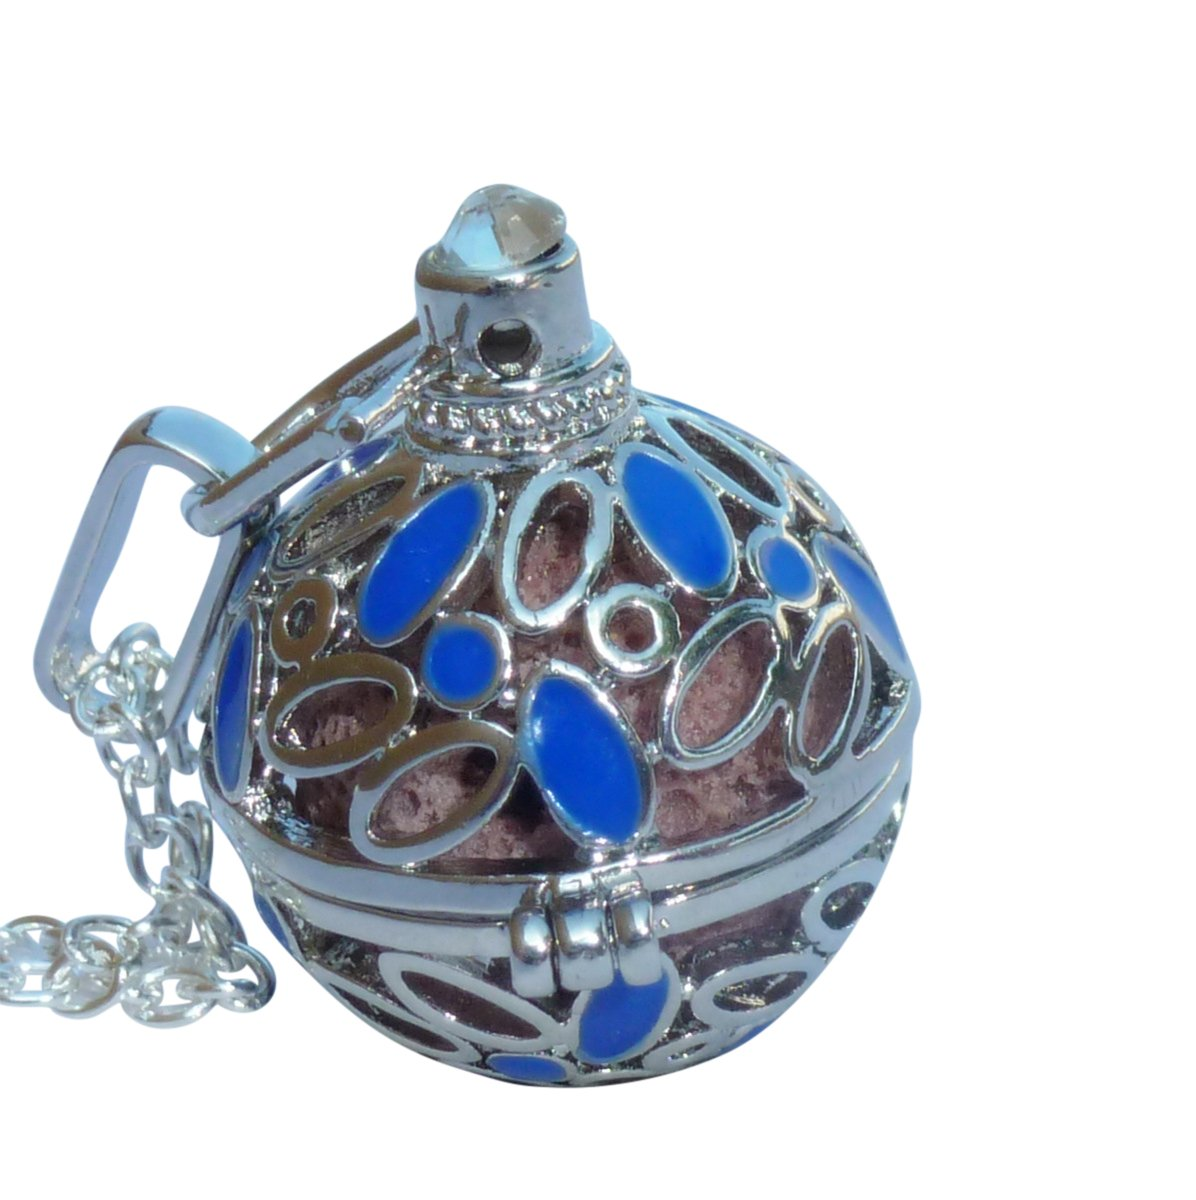 UMBRELLALABORATORY YOur perSOnal STYlish Essential oil necklace Steampunk Blue shiny flowers d2 0